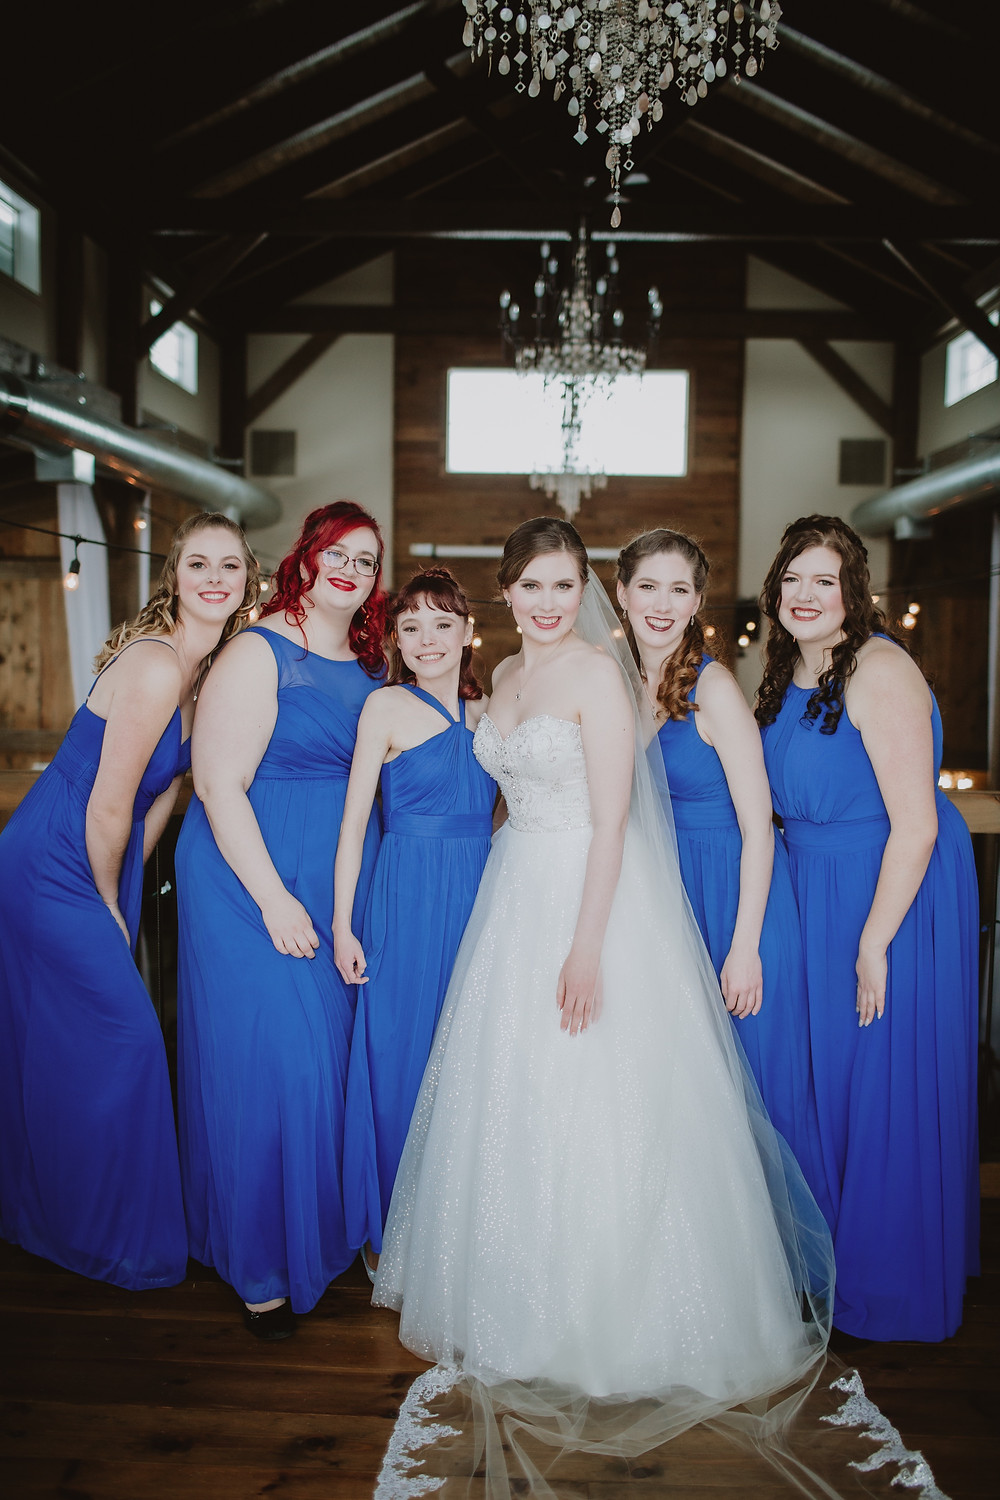 Indoor wedding party portraits at Hawthorne Estates.